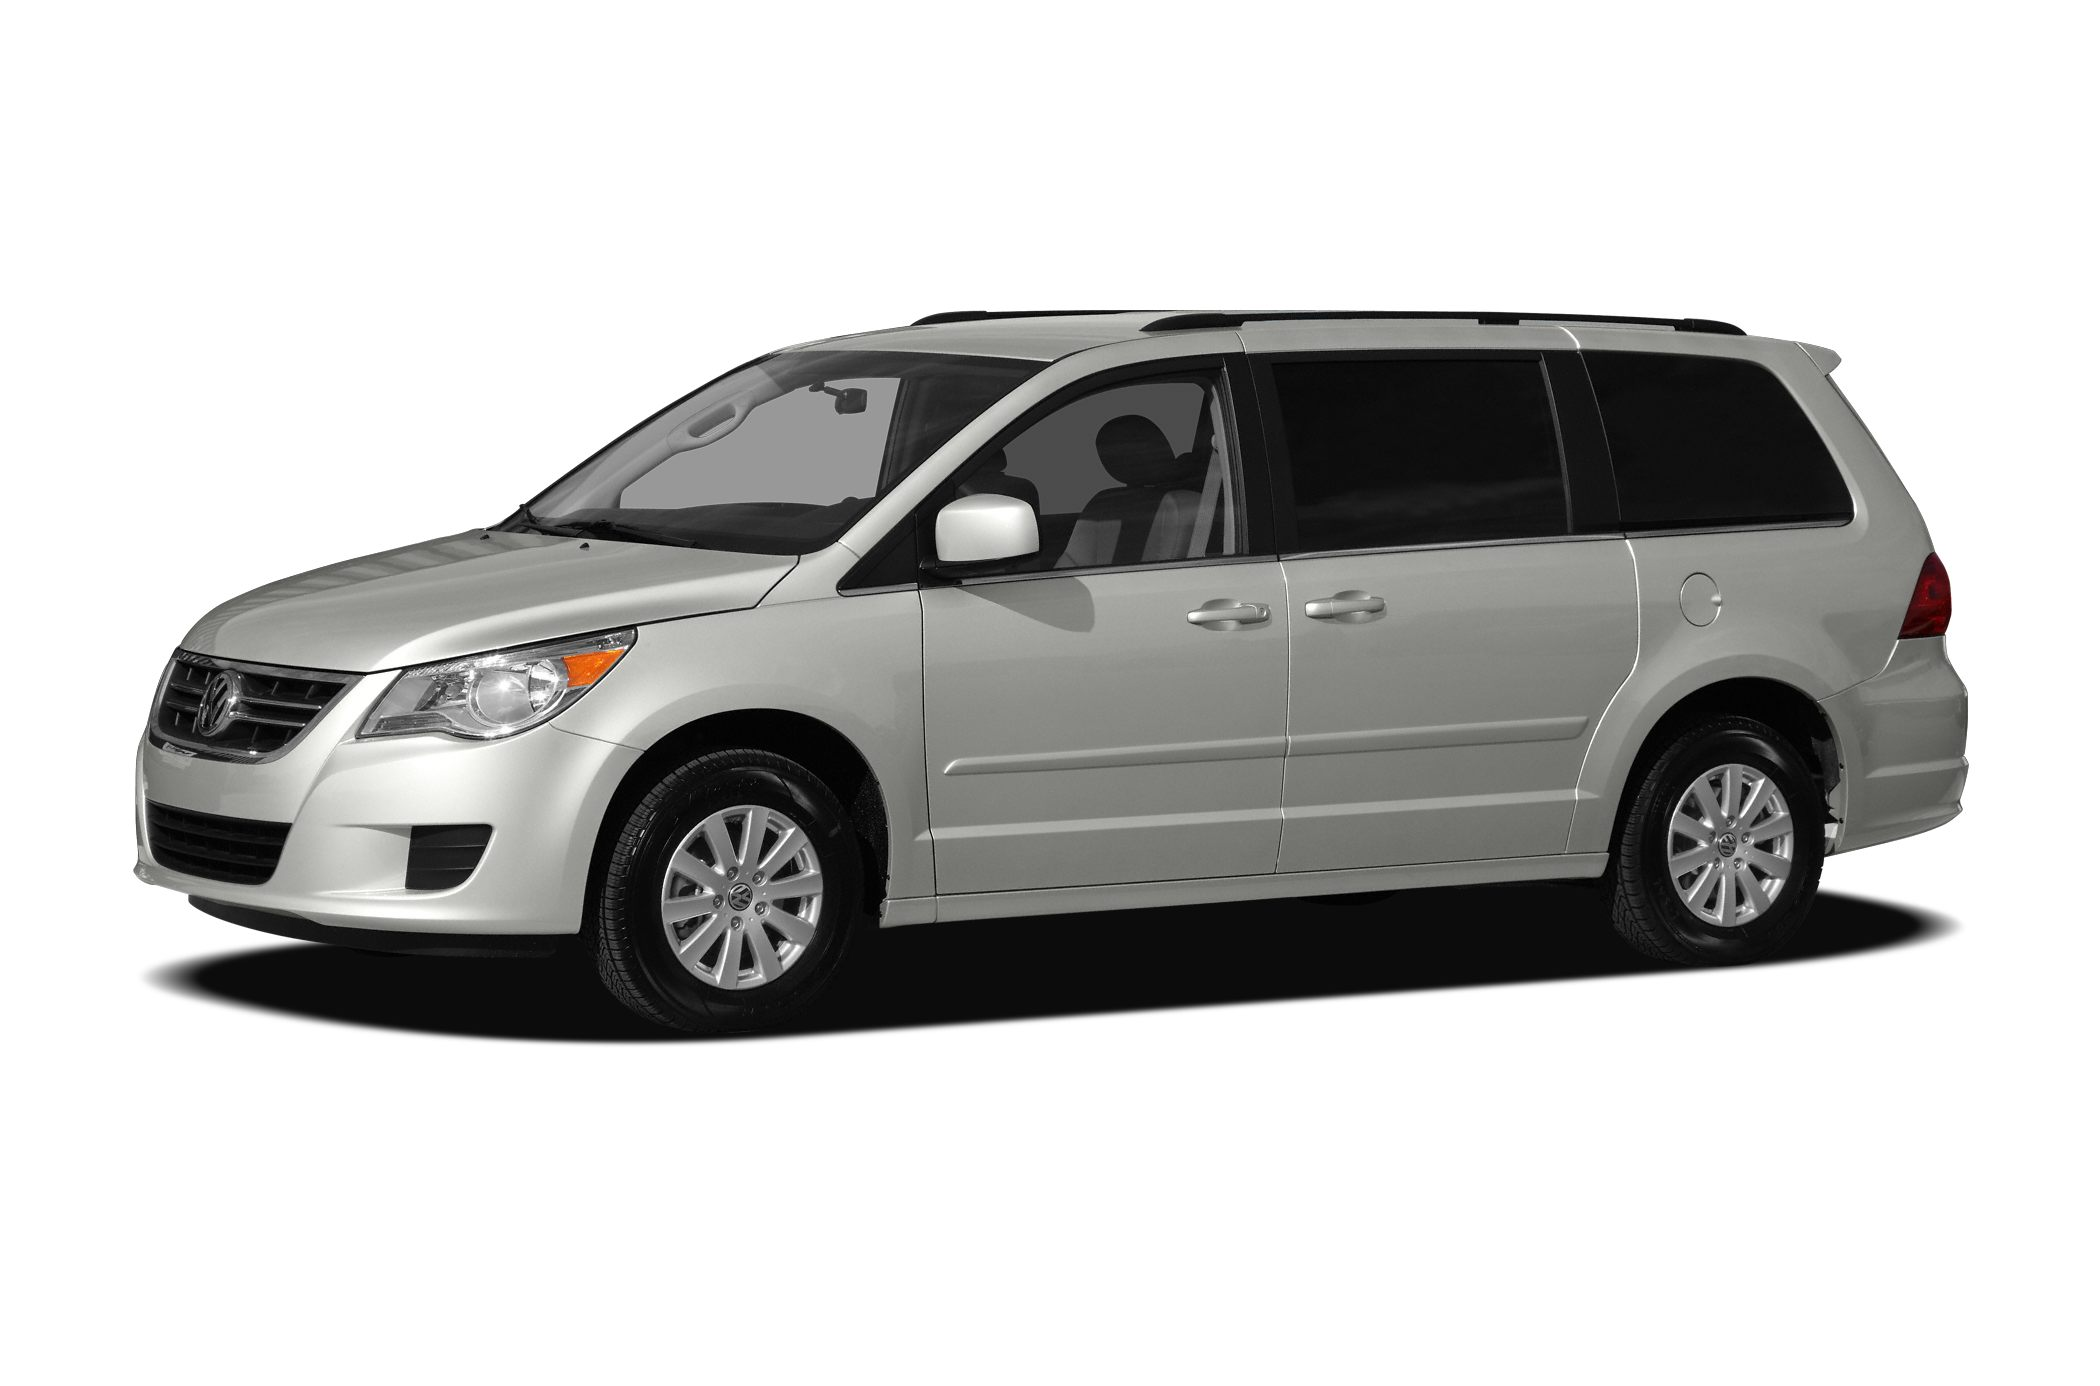 2009 Volkswagen Routan SEL 2009 Volkswagen Routan automatic leather dual rear power sliding doors